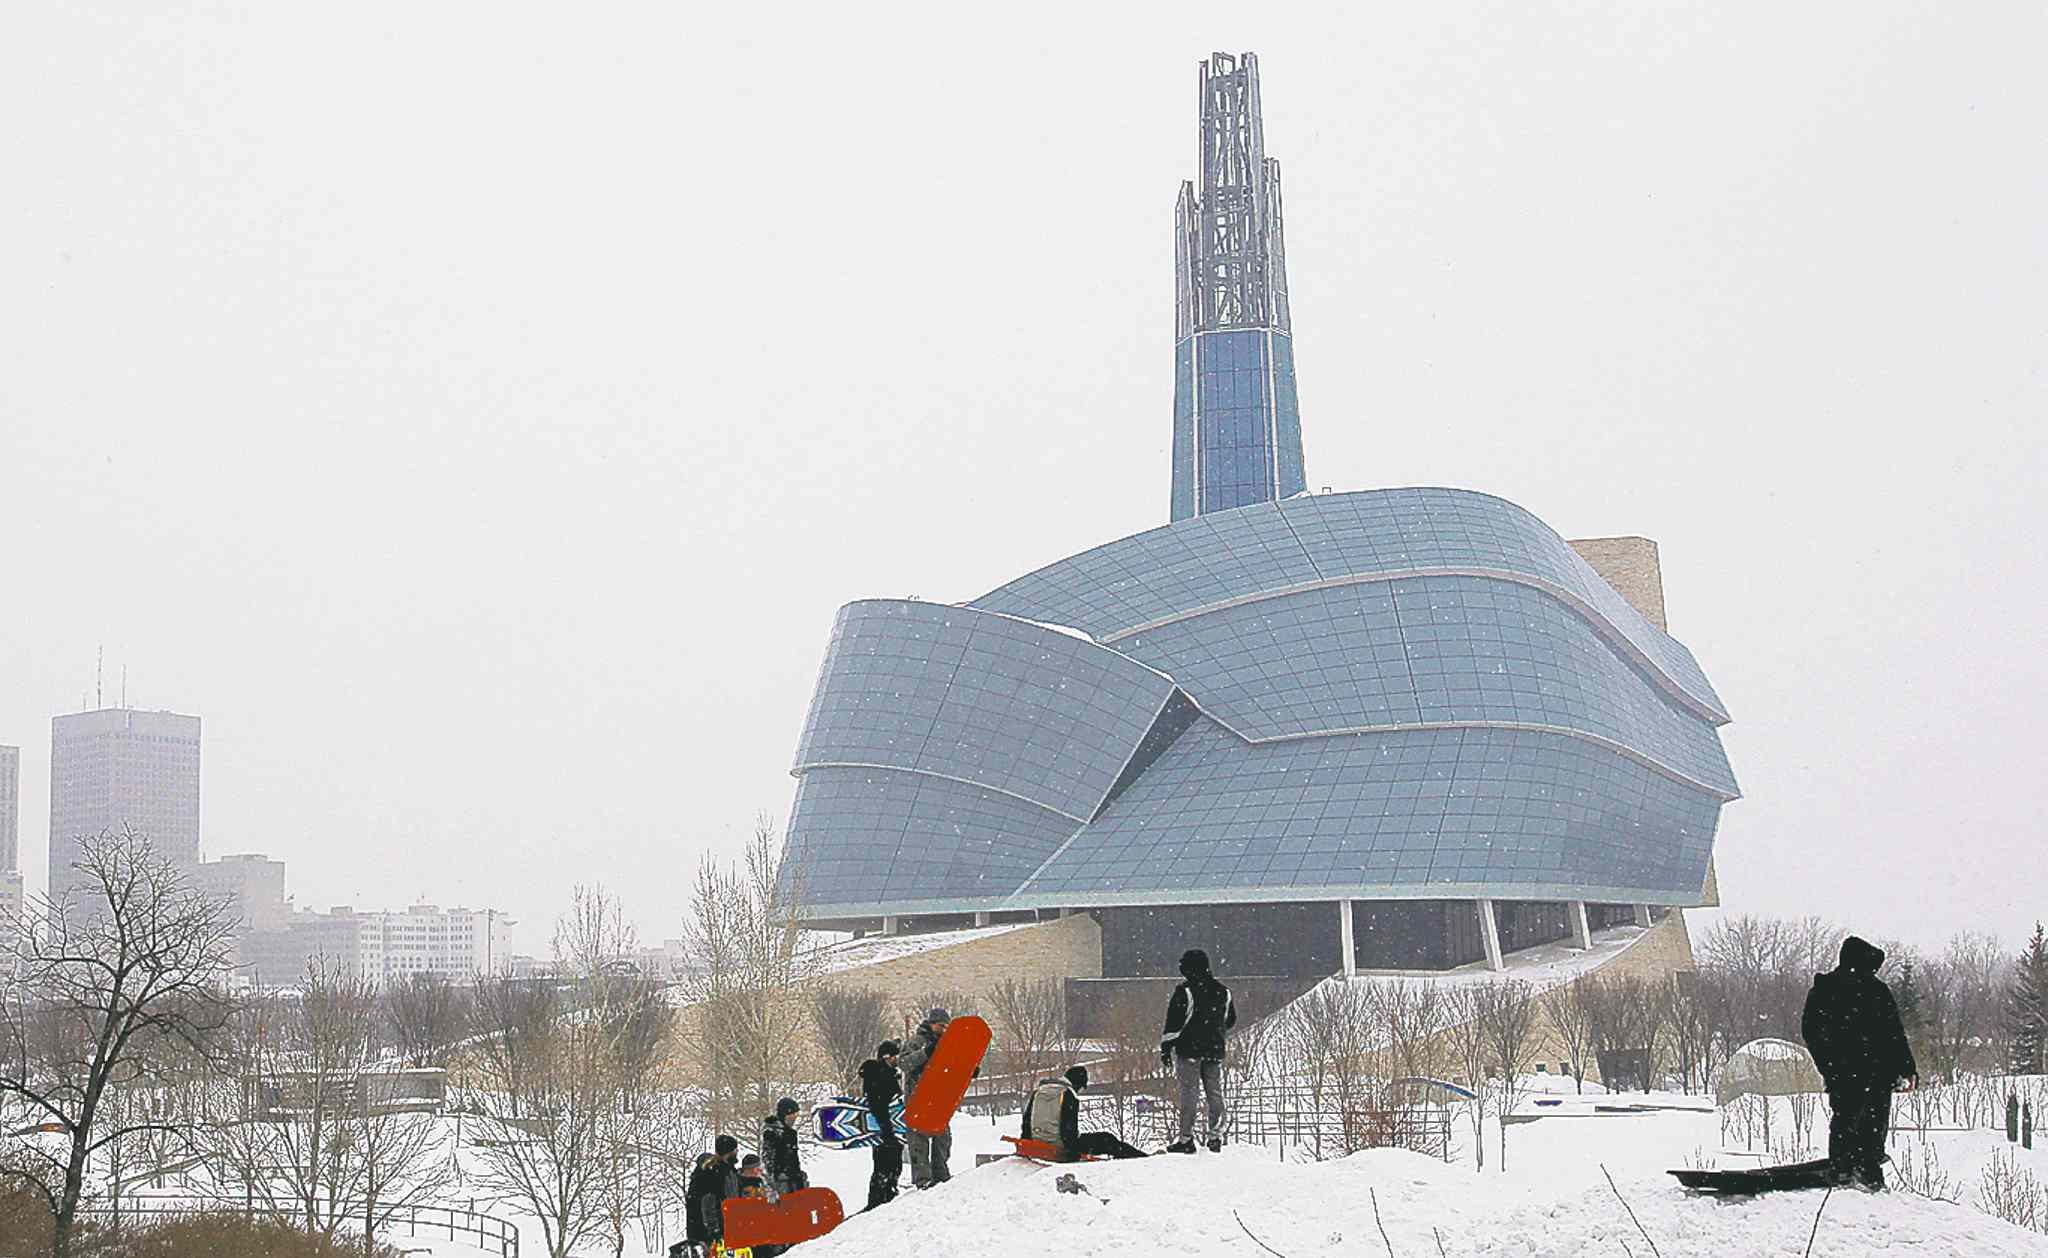 The Canadian Museum for Human Rights opens in September. Its missteps give critics more reason to be skeptical.